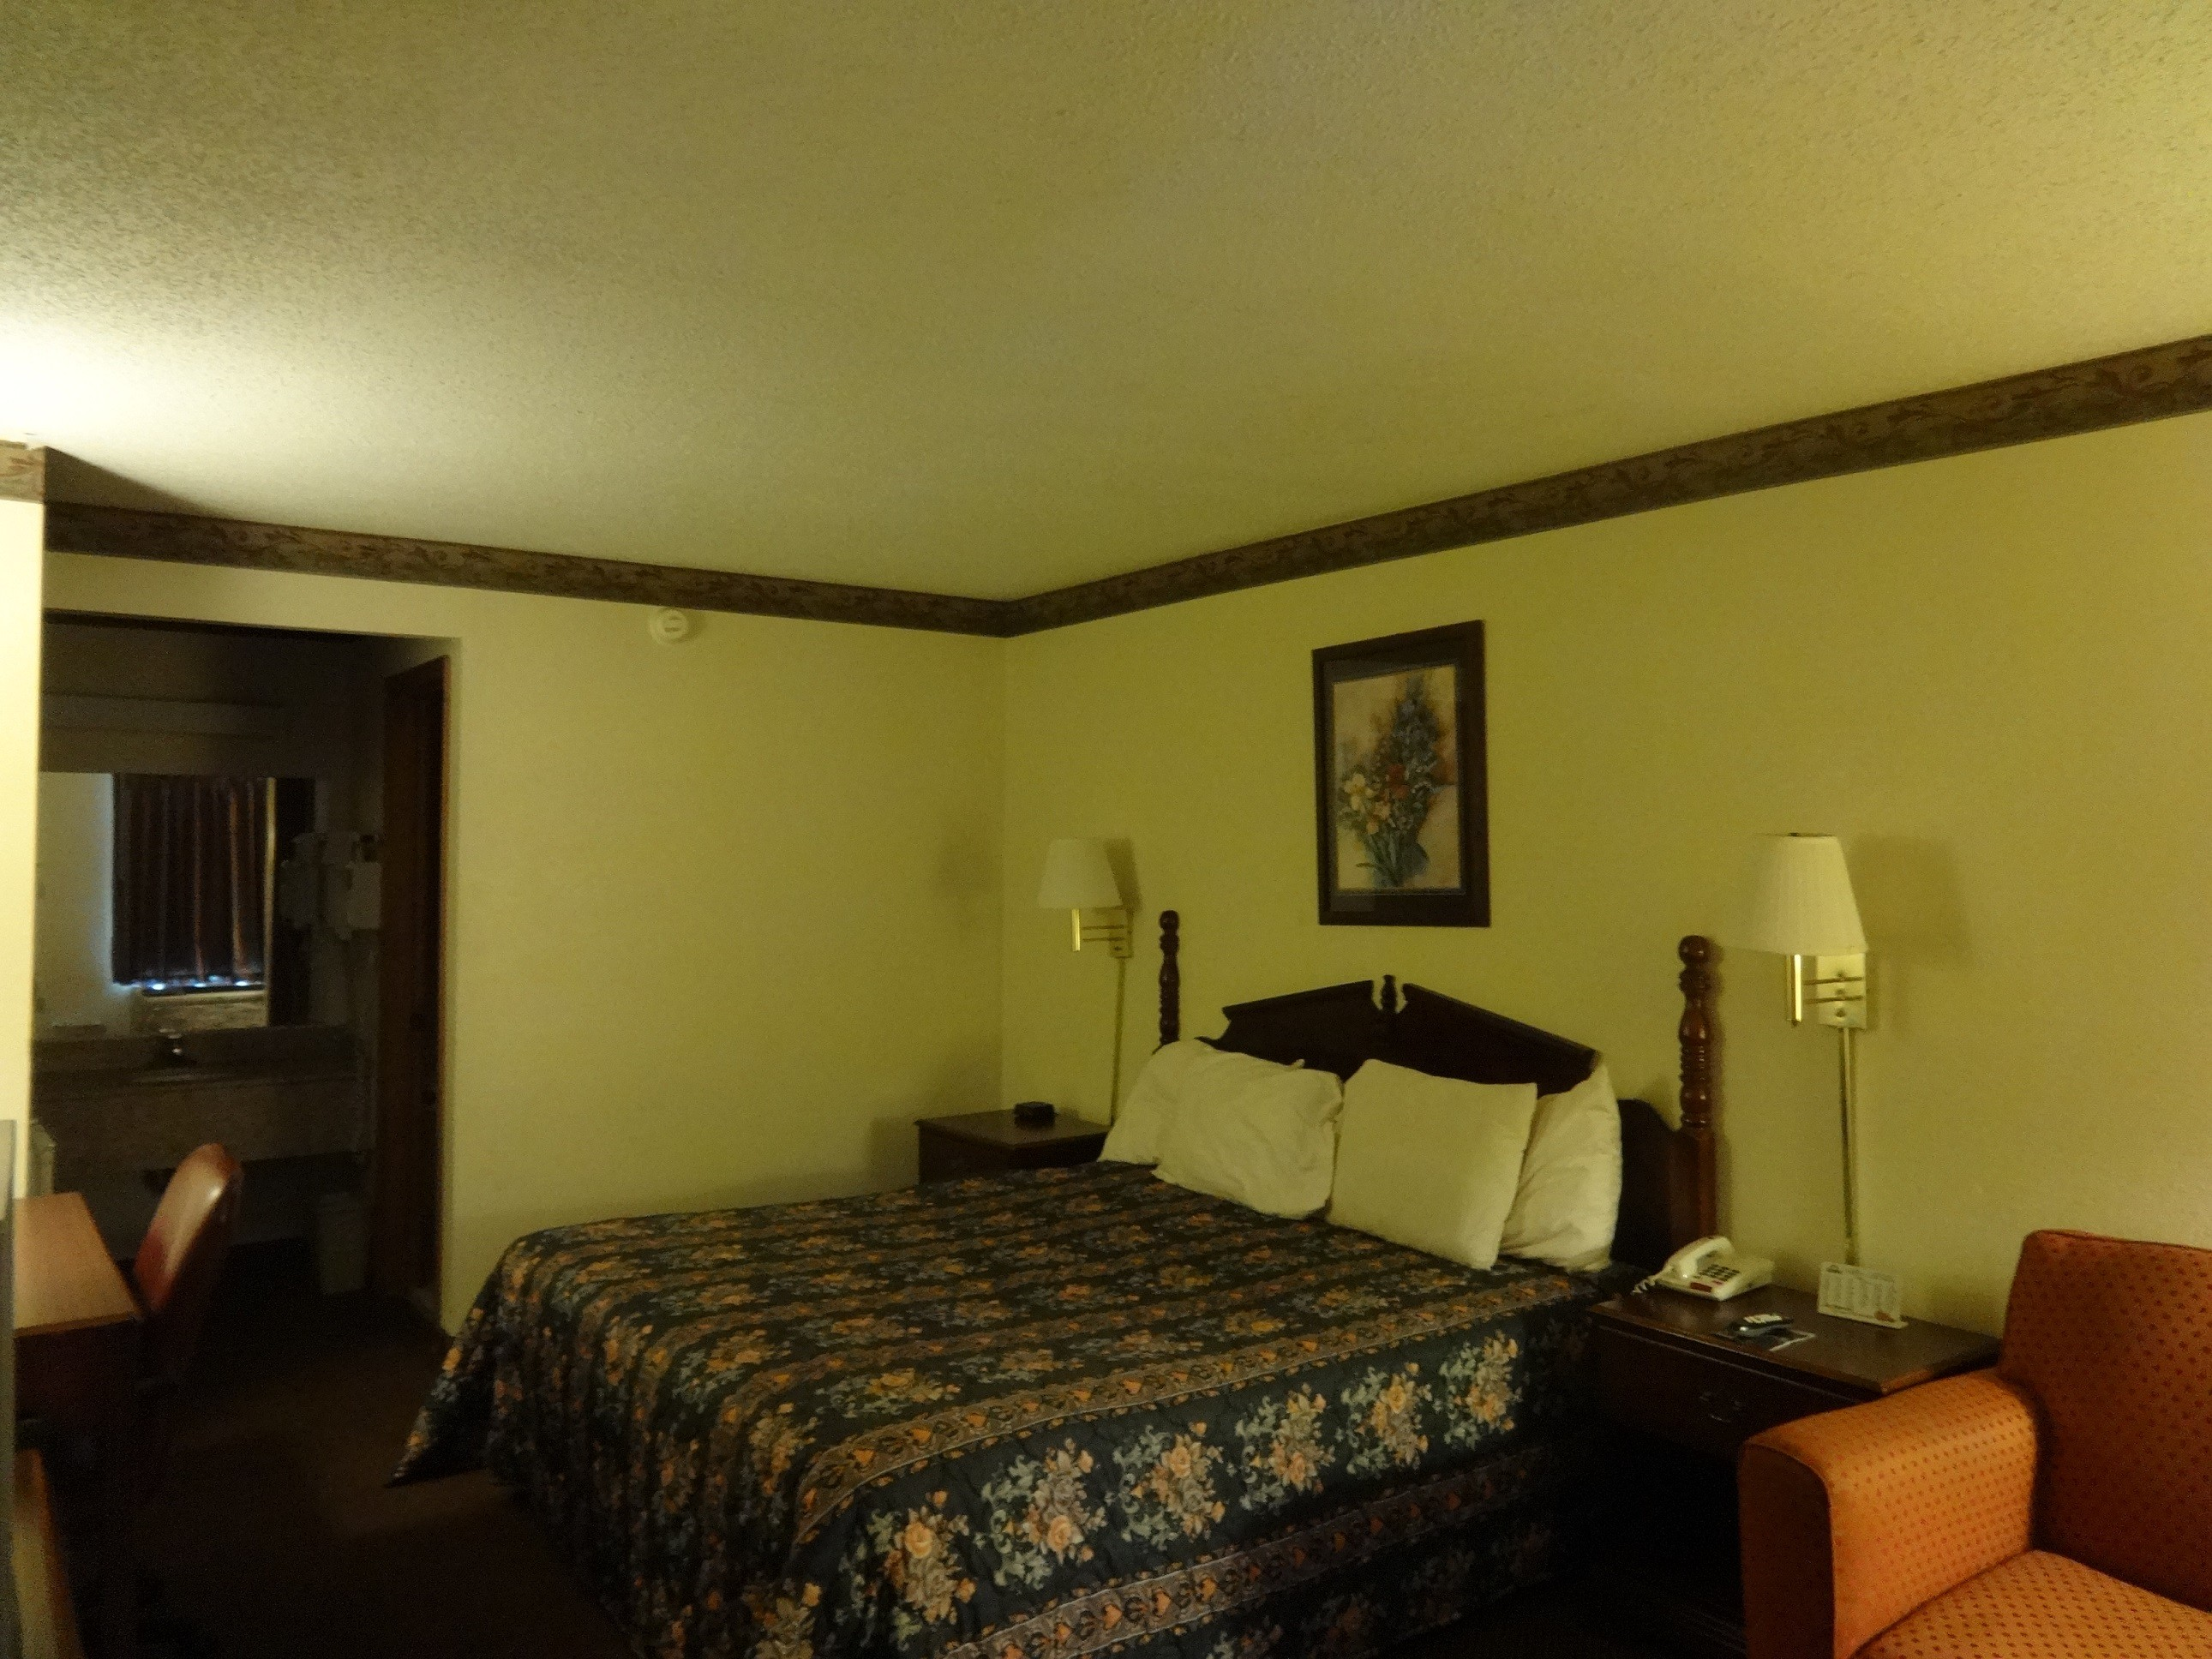 Days Inn Hotel interior